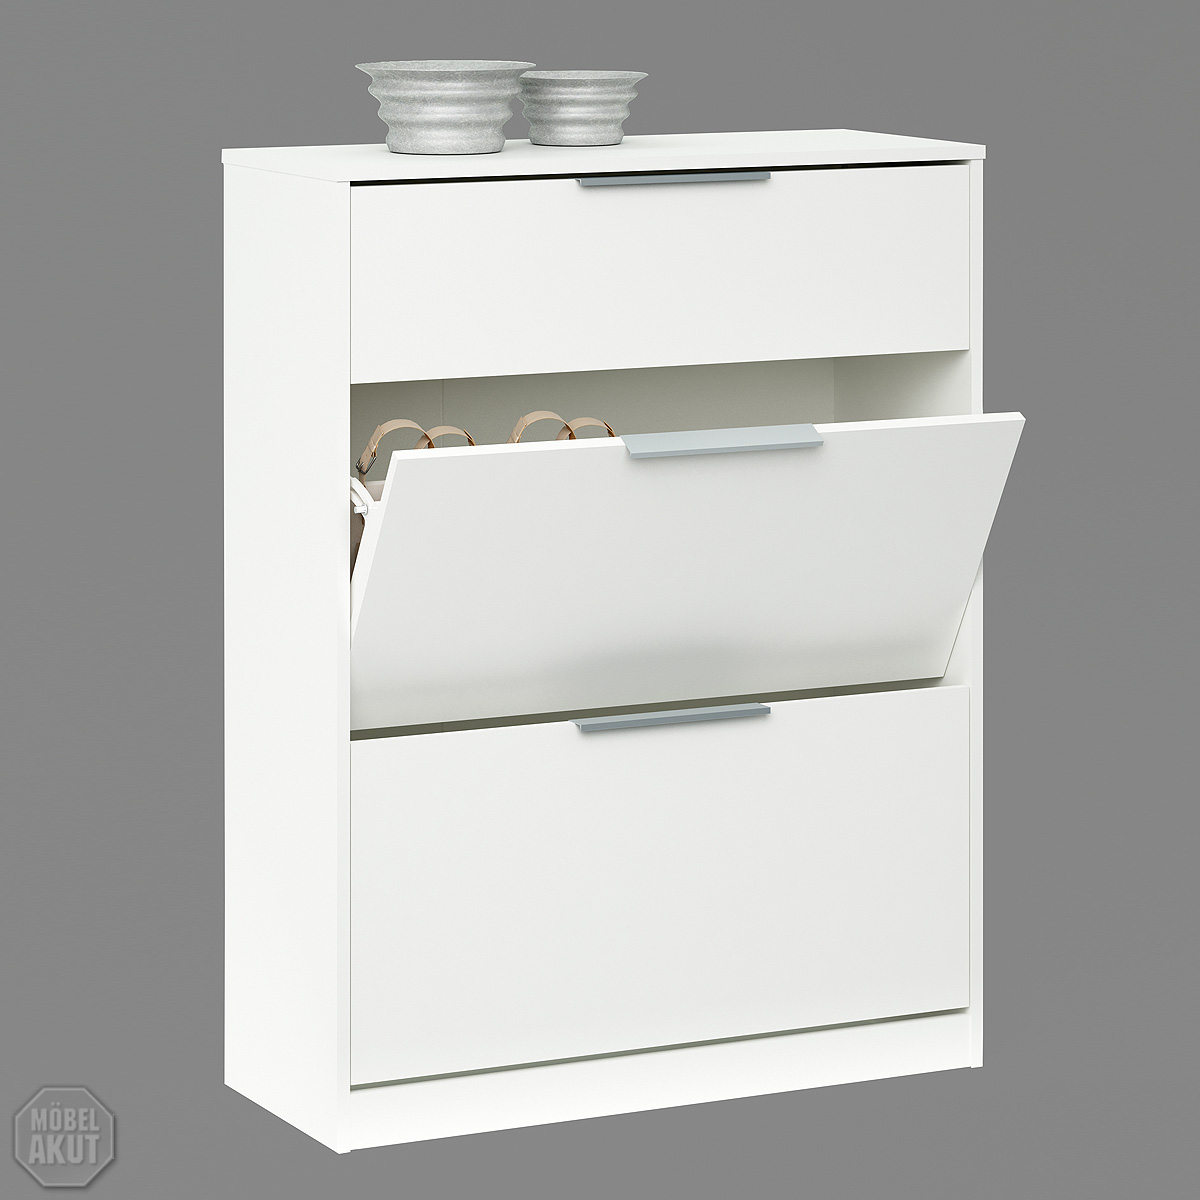 schuhschrank chest schuhkommode schuhregal schrank kommode in wei ebay. Black Bedroom Furniture Sets. Home Design Ideas